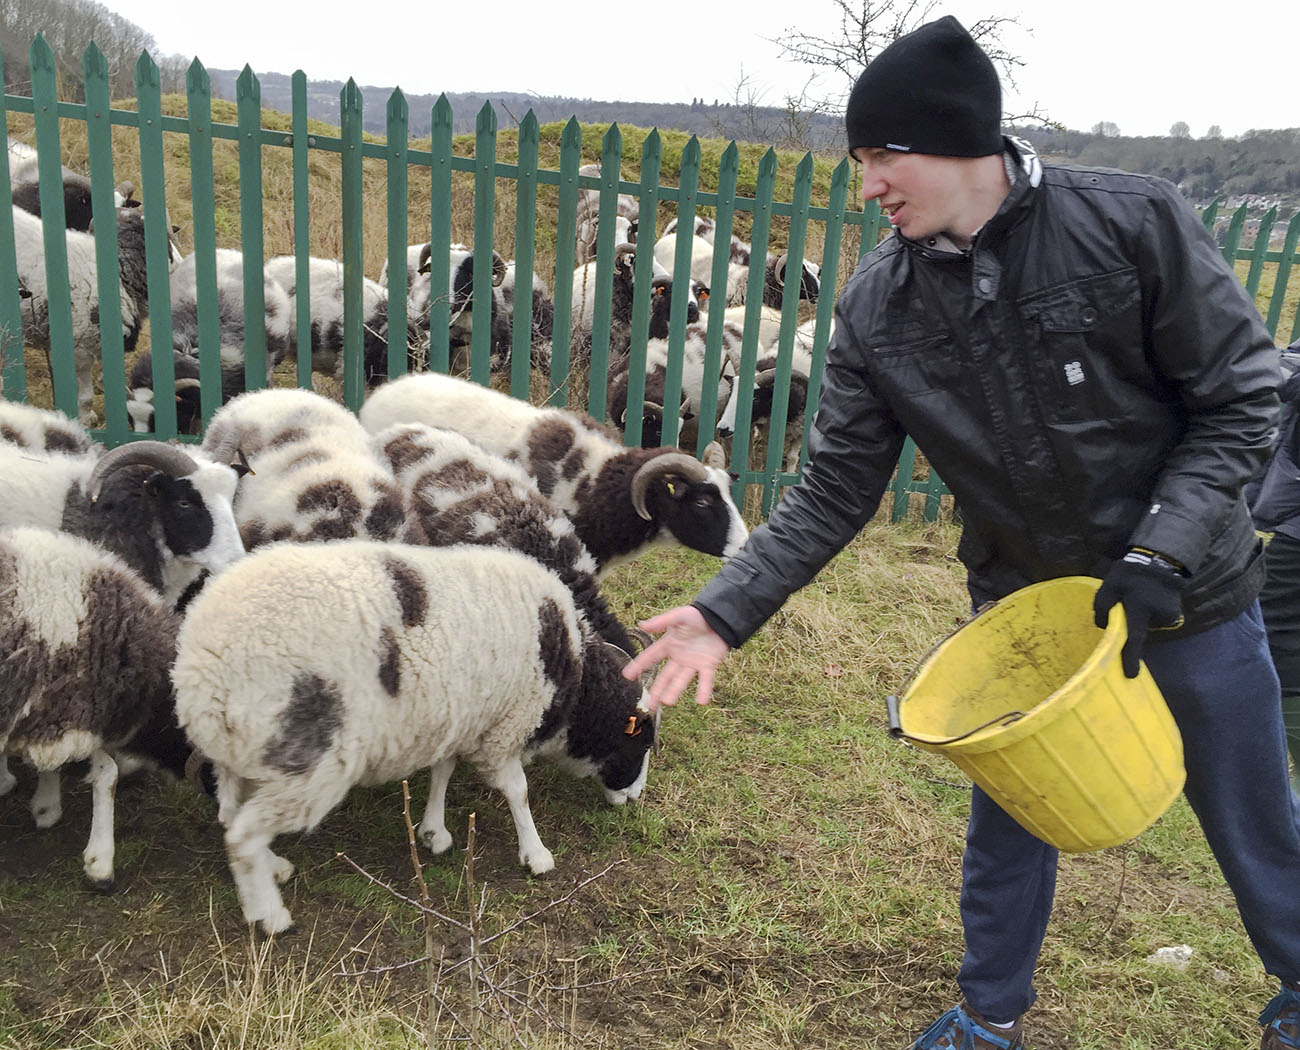 A walker feeding sheep in Riddlesdown quarry.  26 December 2014.